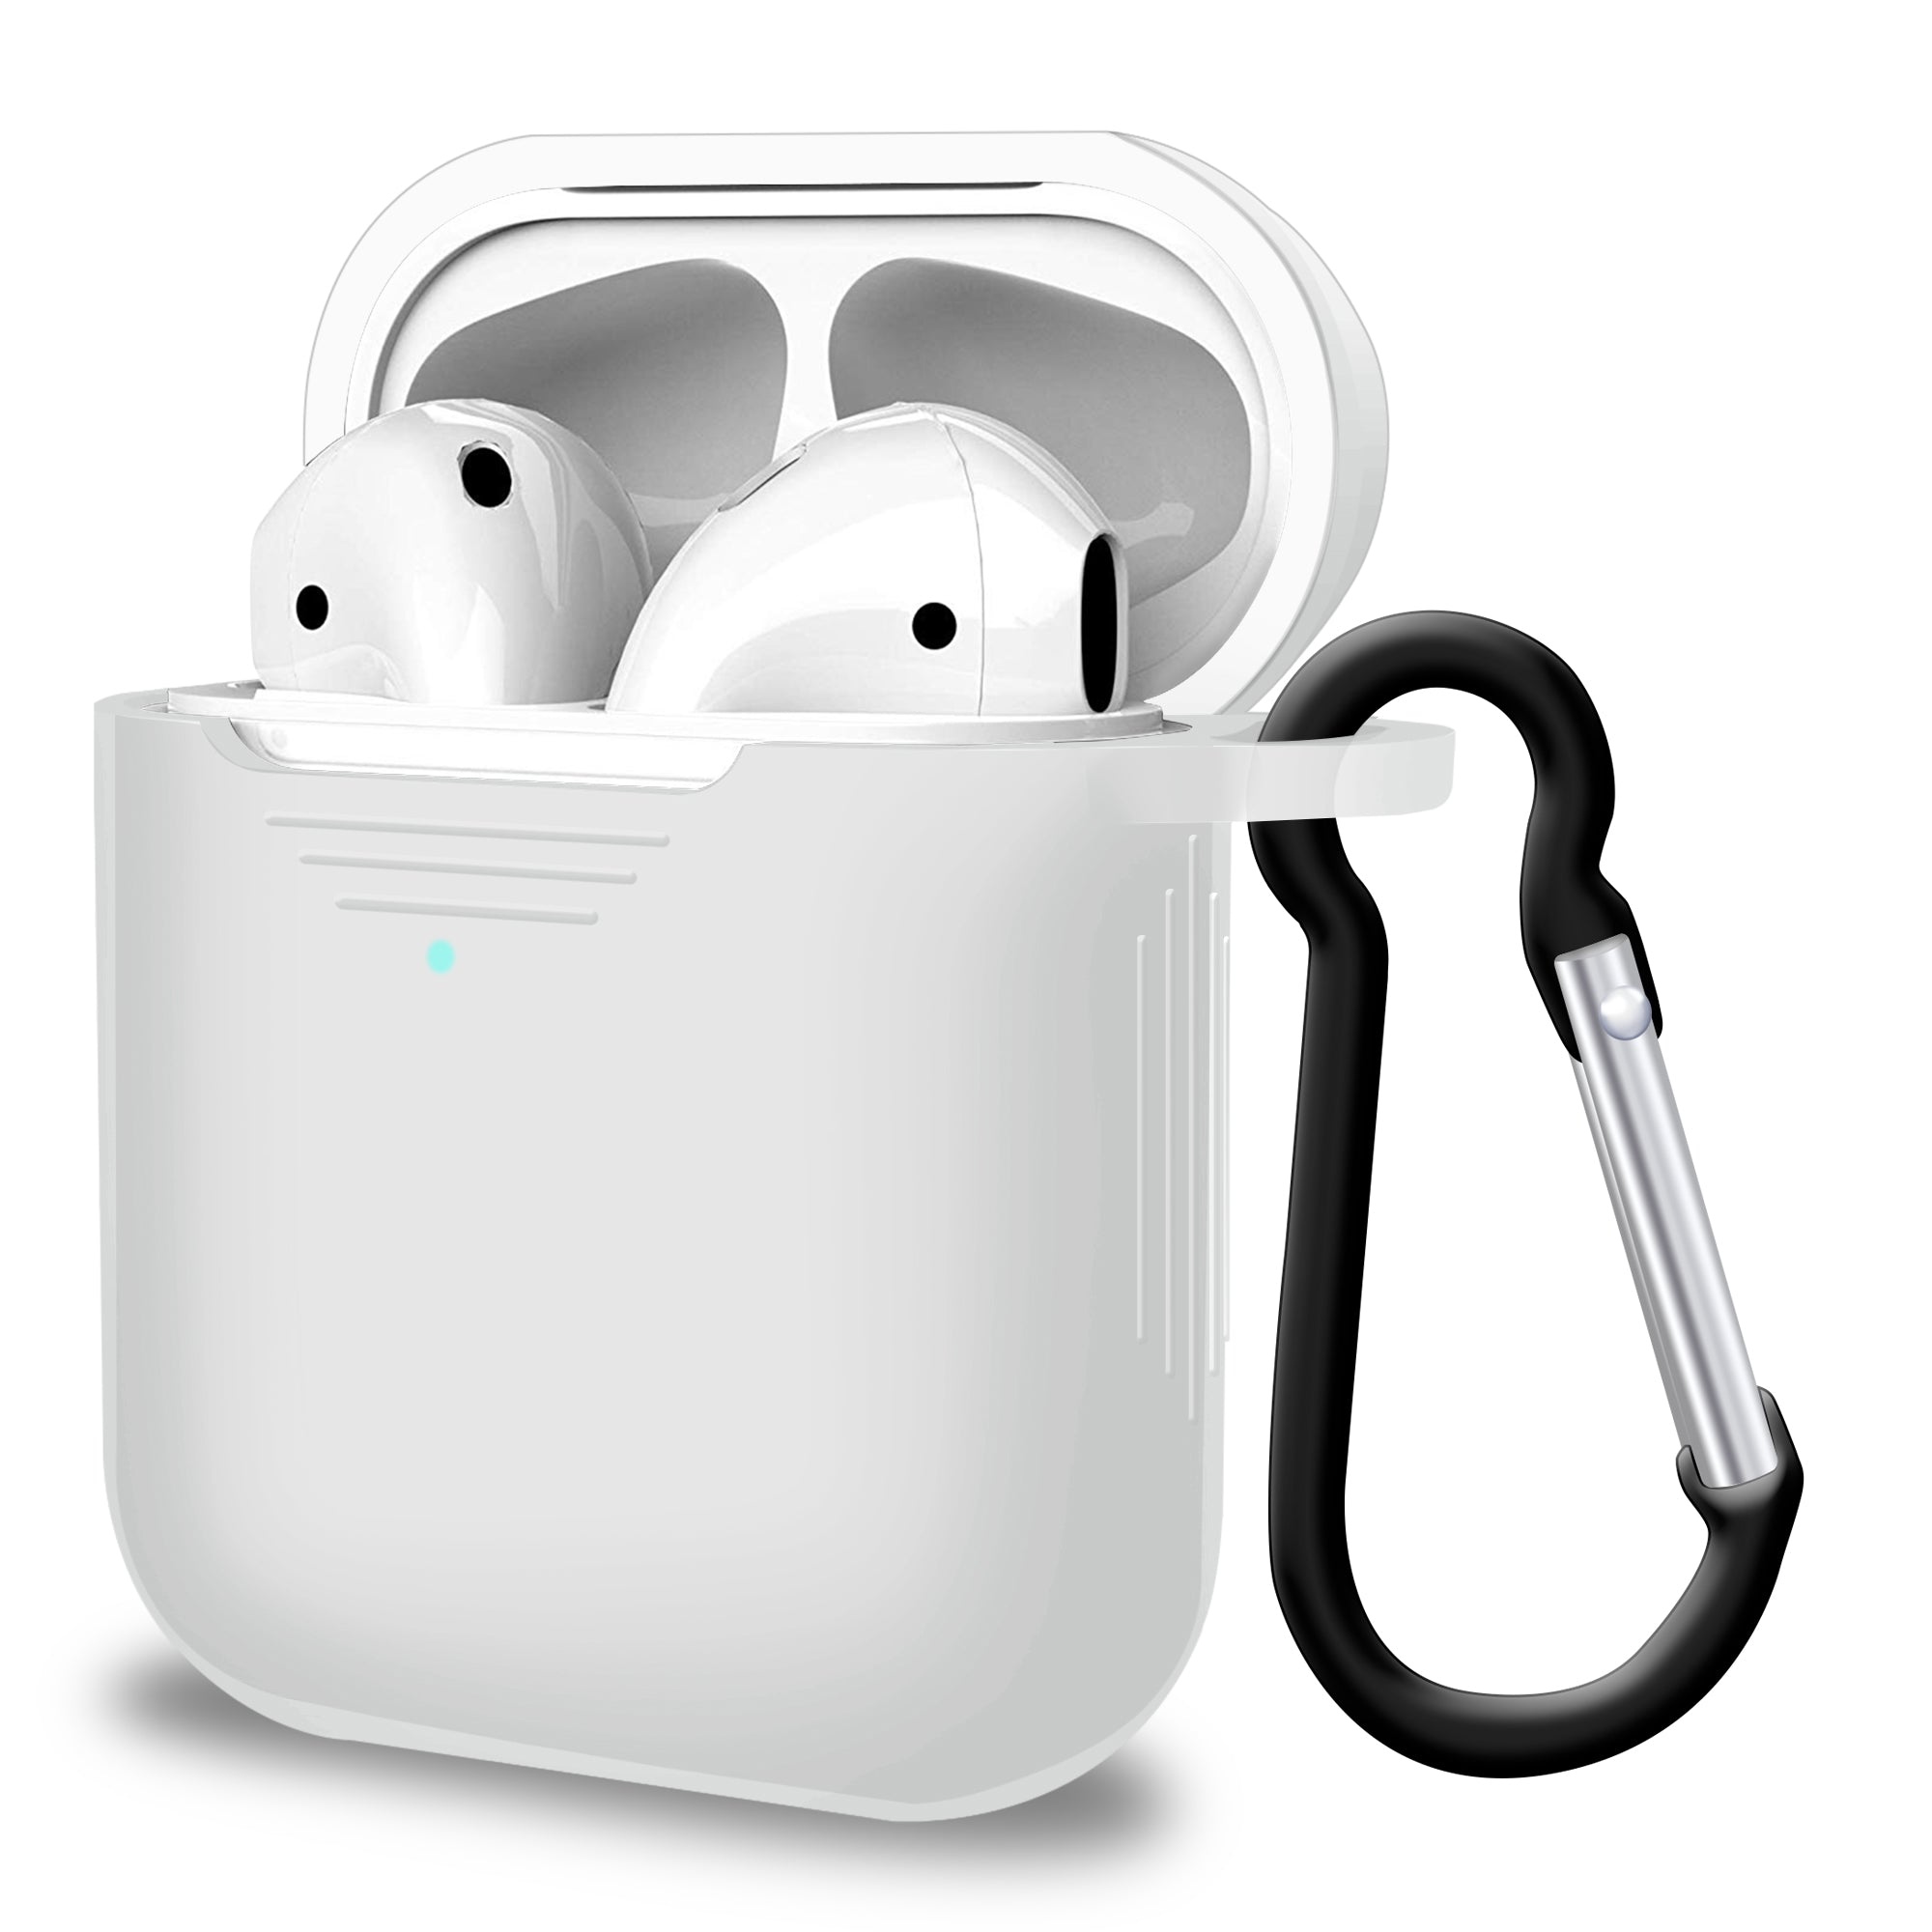 2 in 1 Apple Airpods Silicone Case Earphone Charge Skin Cover - Clear, Audio by TradeNRG